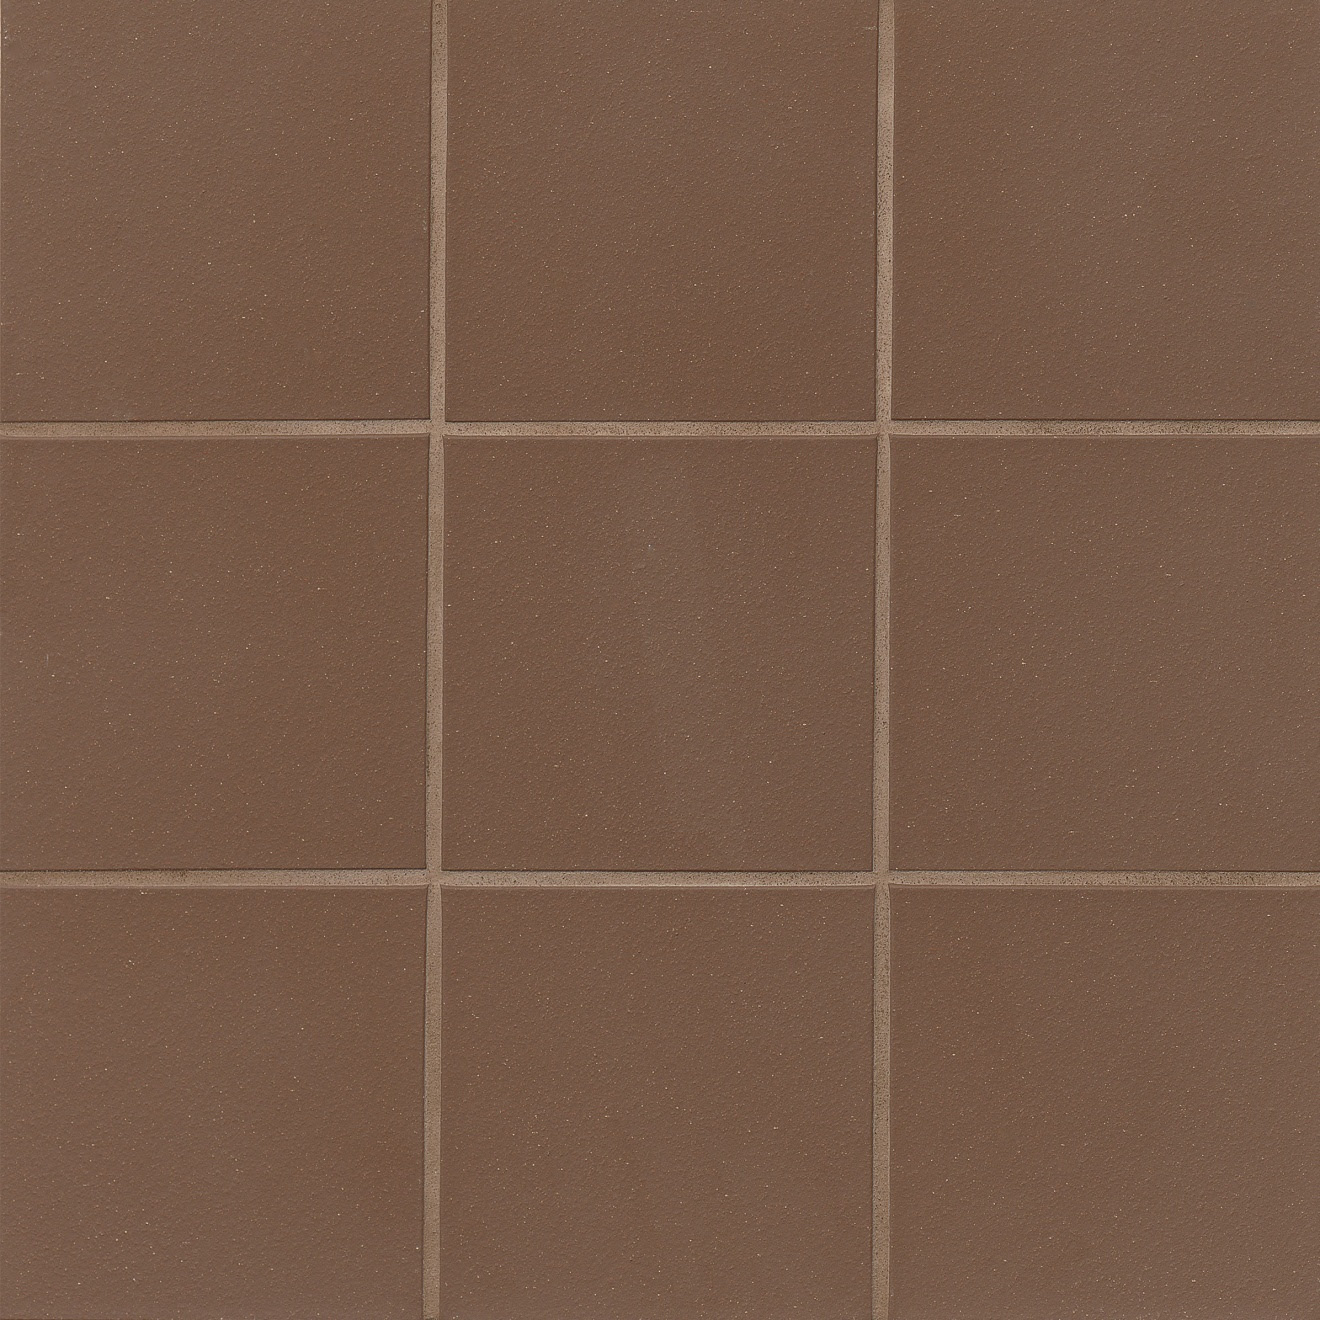 Metropolitan 6 X 6 Floor Wall Tile In Chestnut Brown